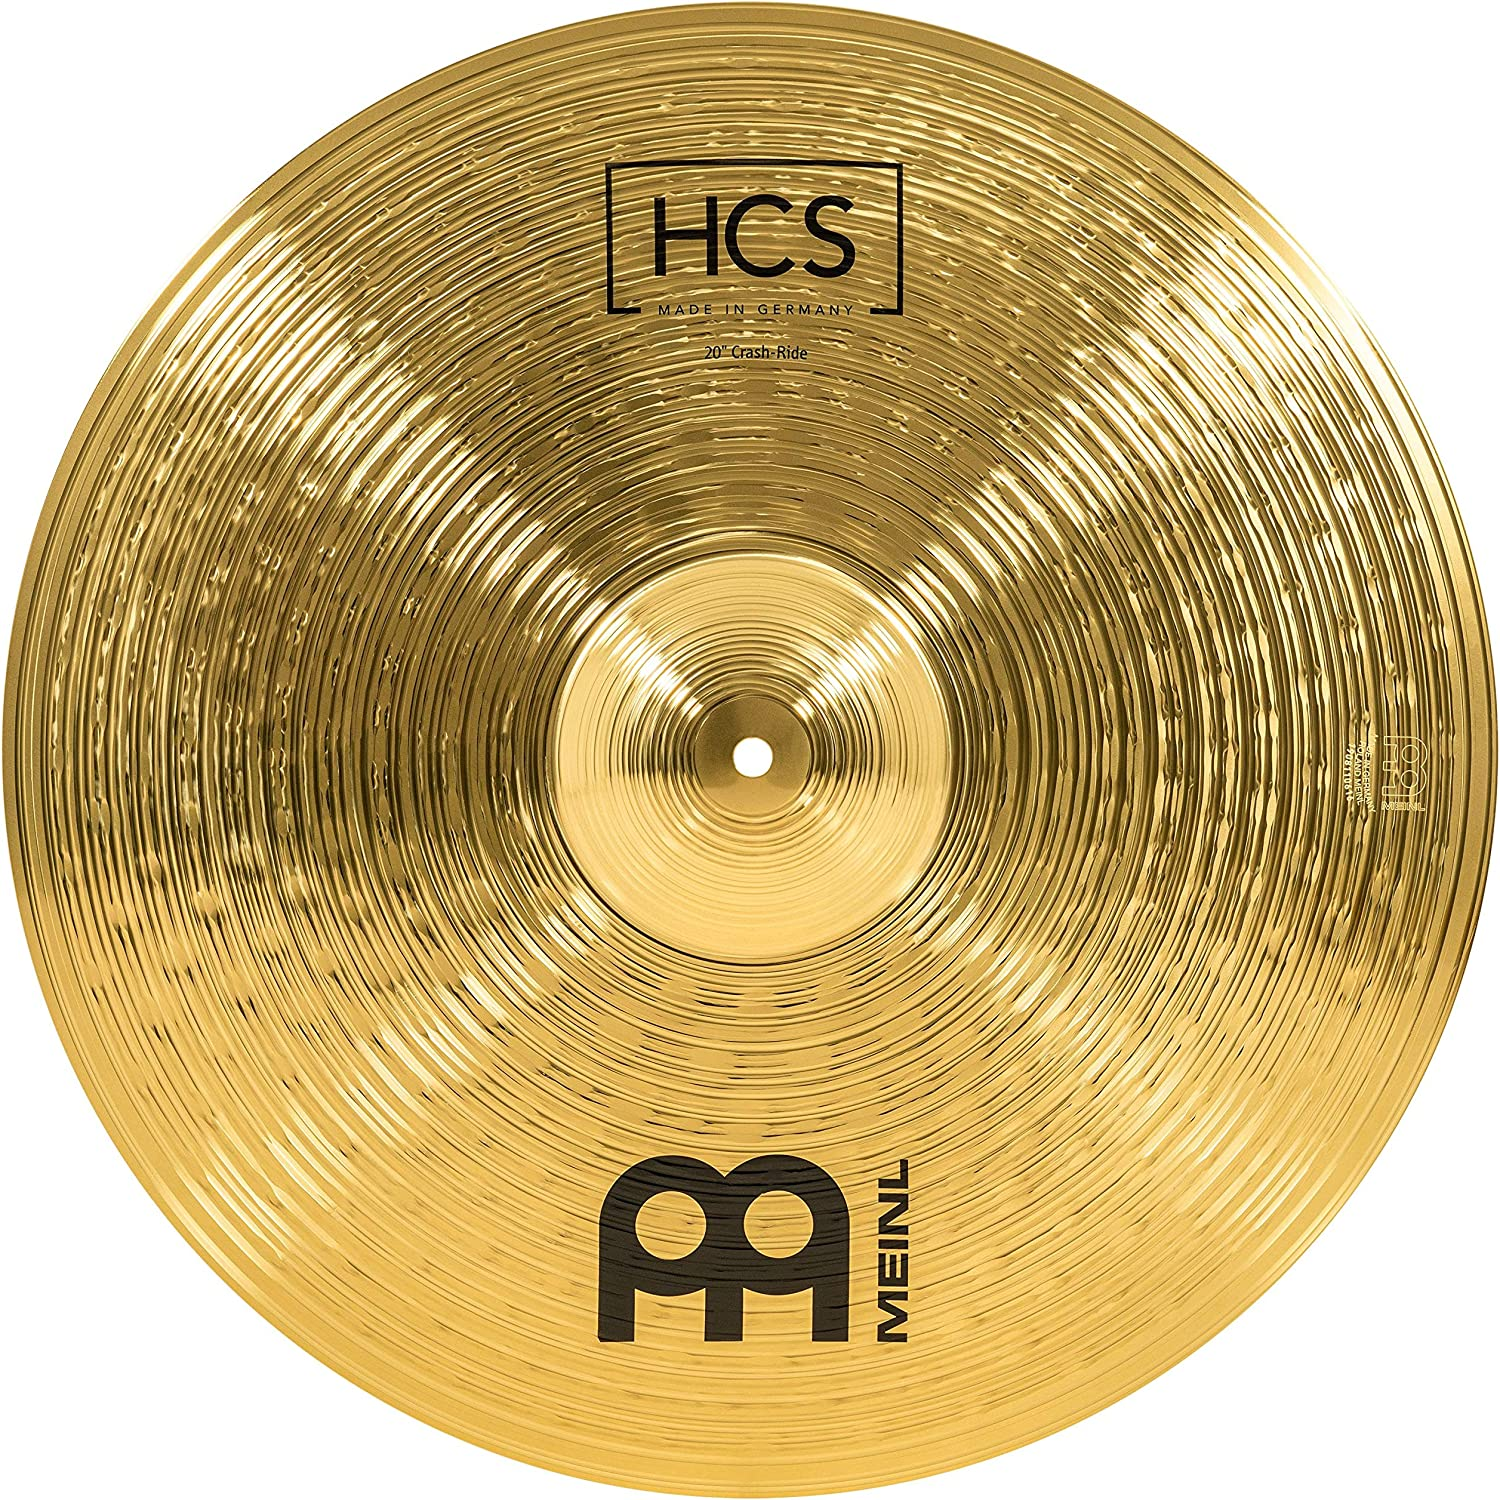 """Meinl Cymbals 5 ☆ popular 20"""" Crash-Ride – Traditional Brass Genuine for HCS Finish"""